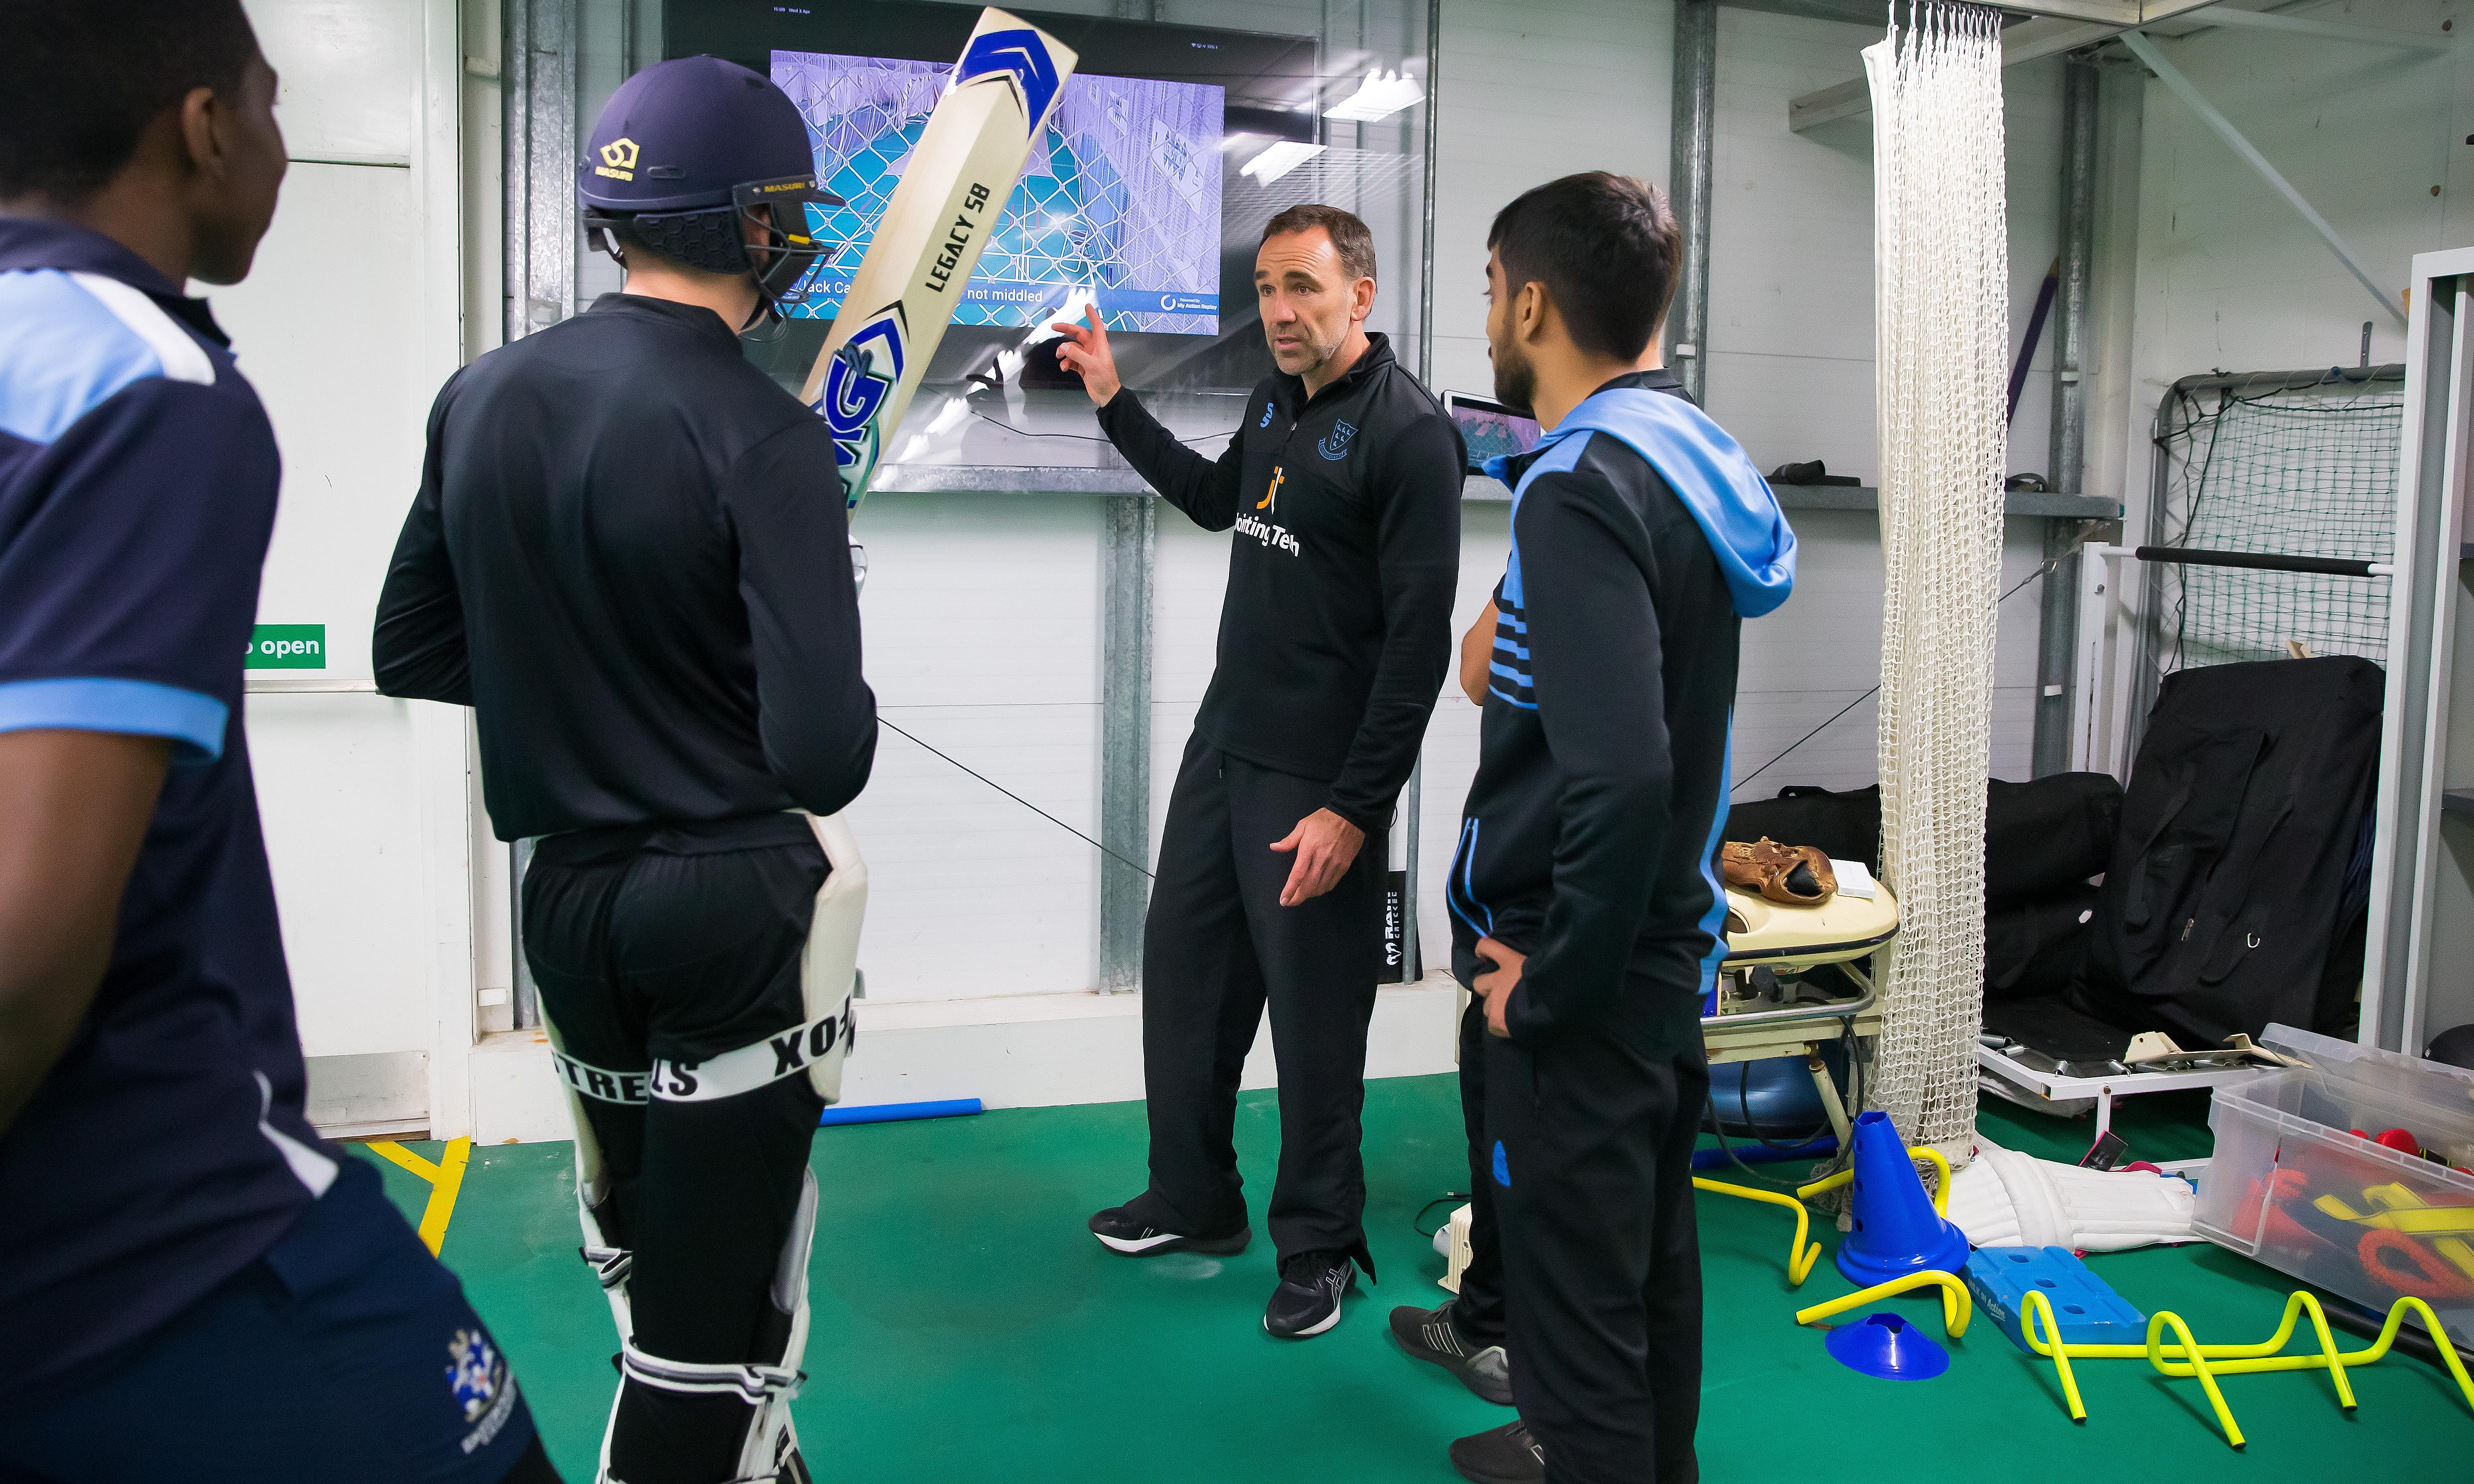 A cricket coaching revolution is under way in Sussex – just press play